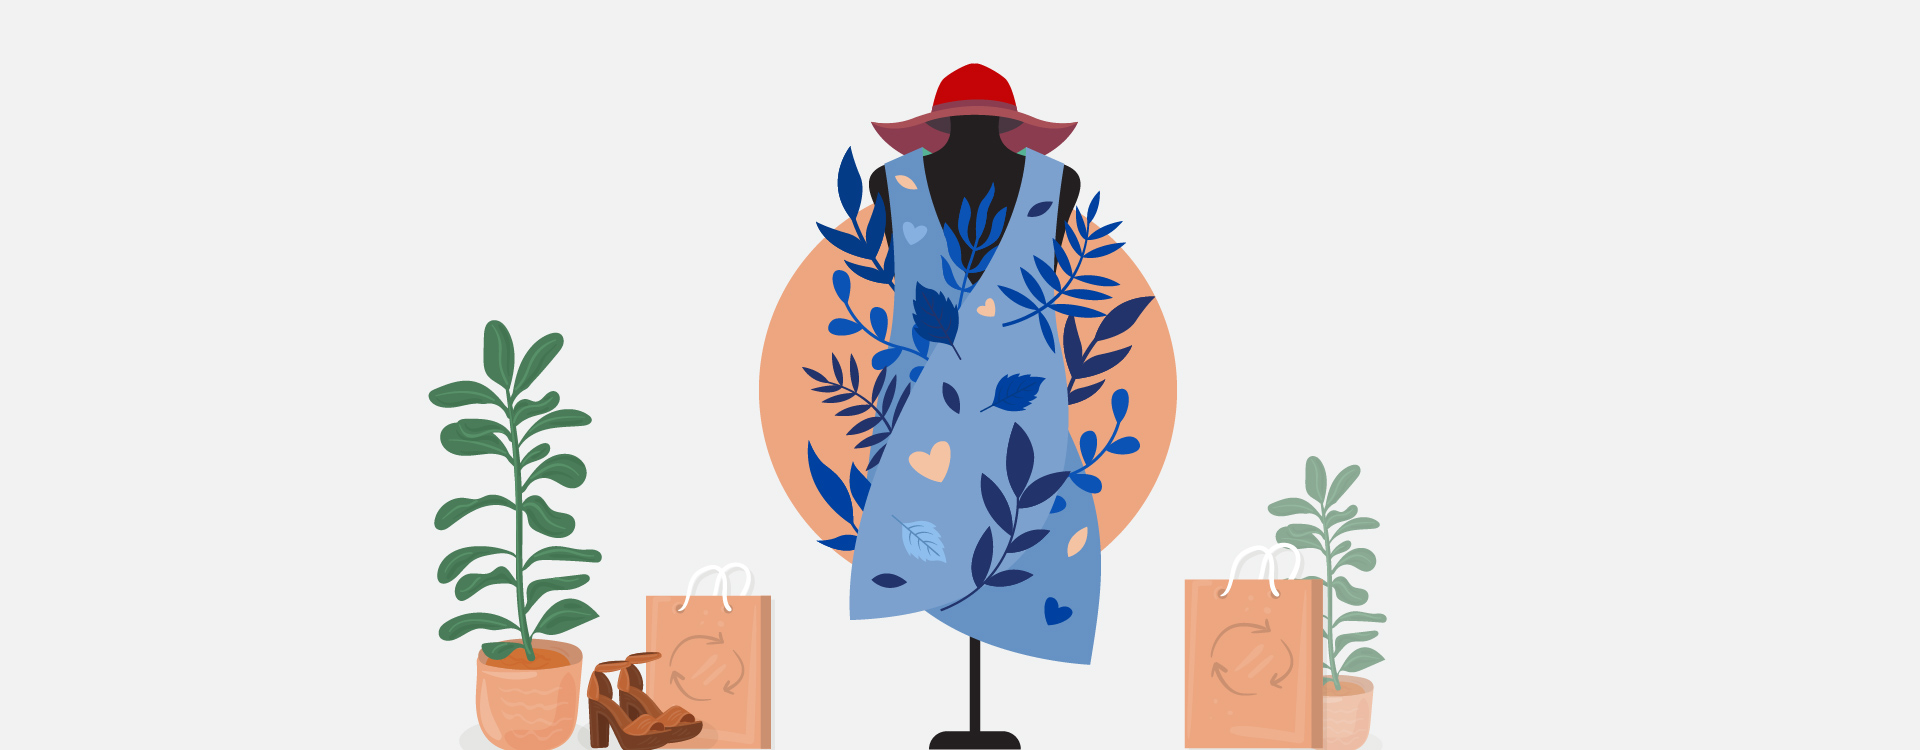 Millennials and GenZ are driving the demand for sustainable brands.